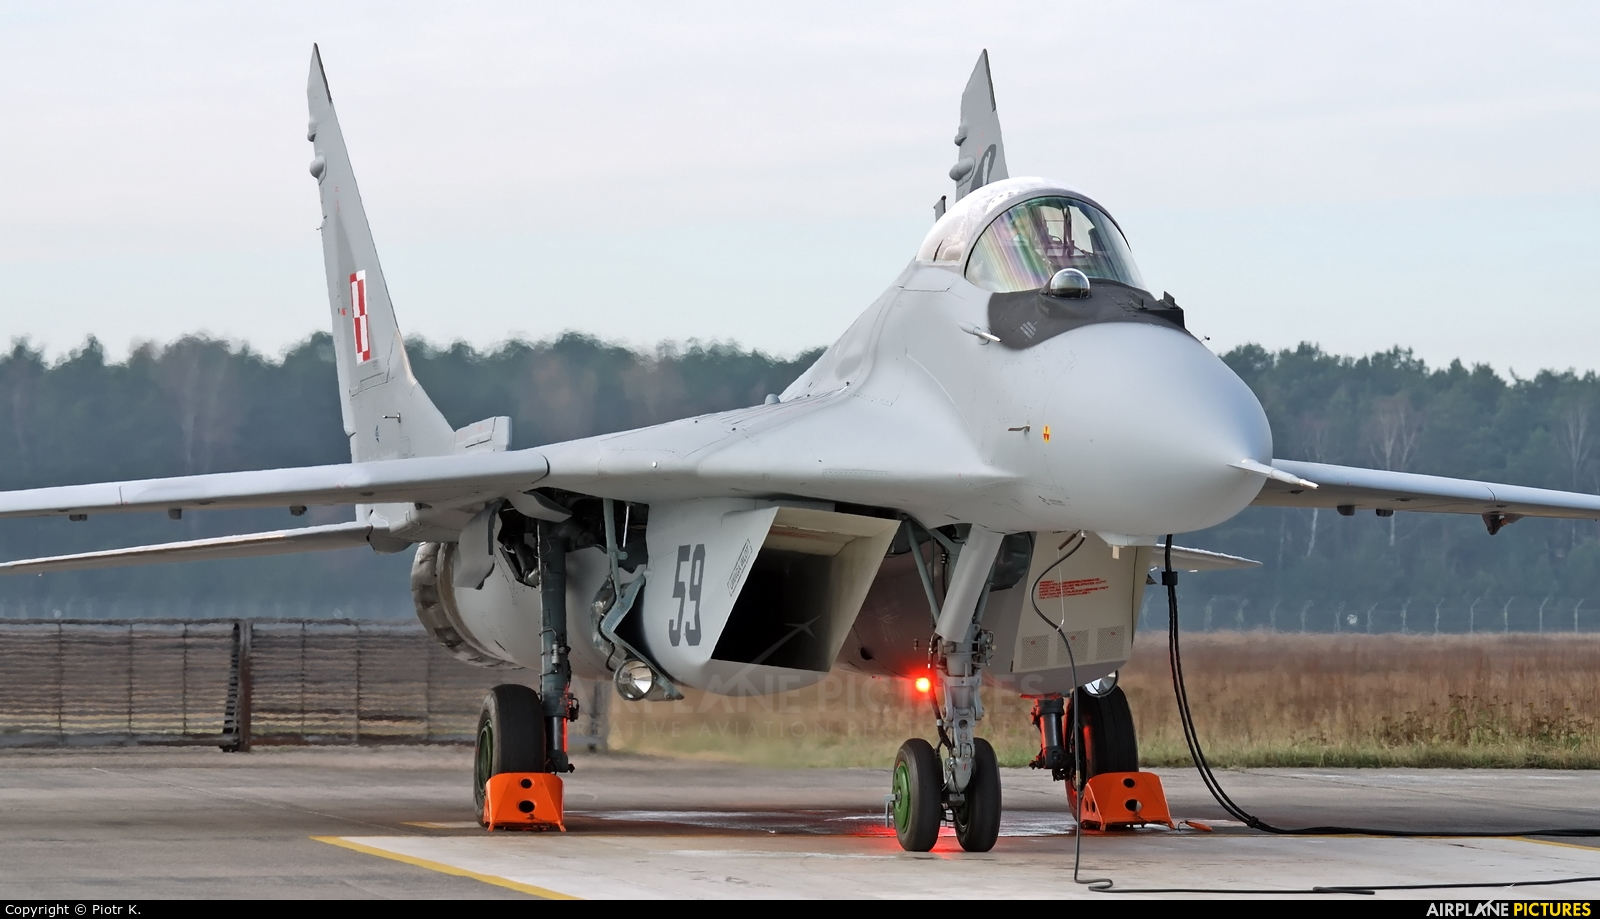 Poland - Air Force 59 aircraft at Bydgoszcz - Szwederowo